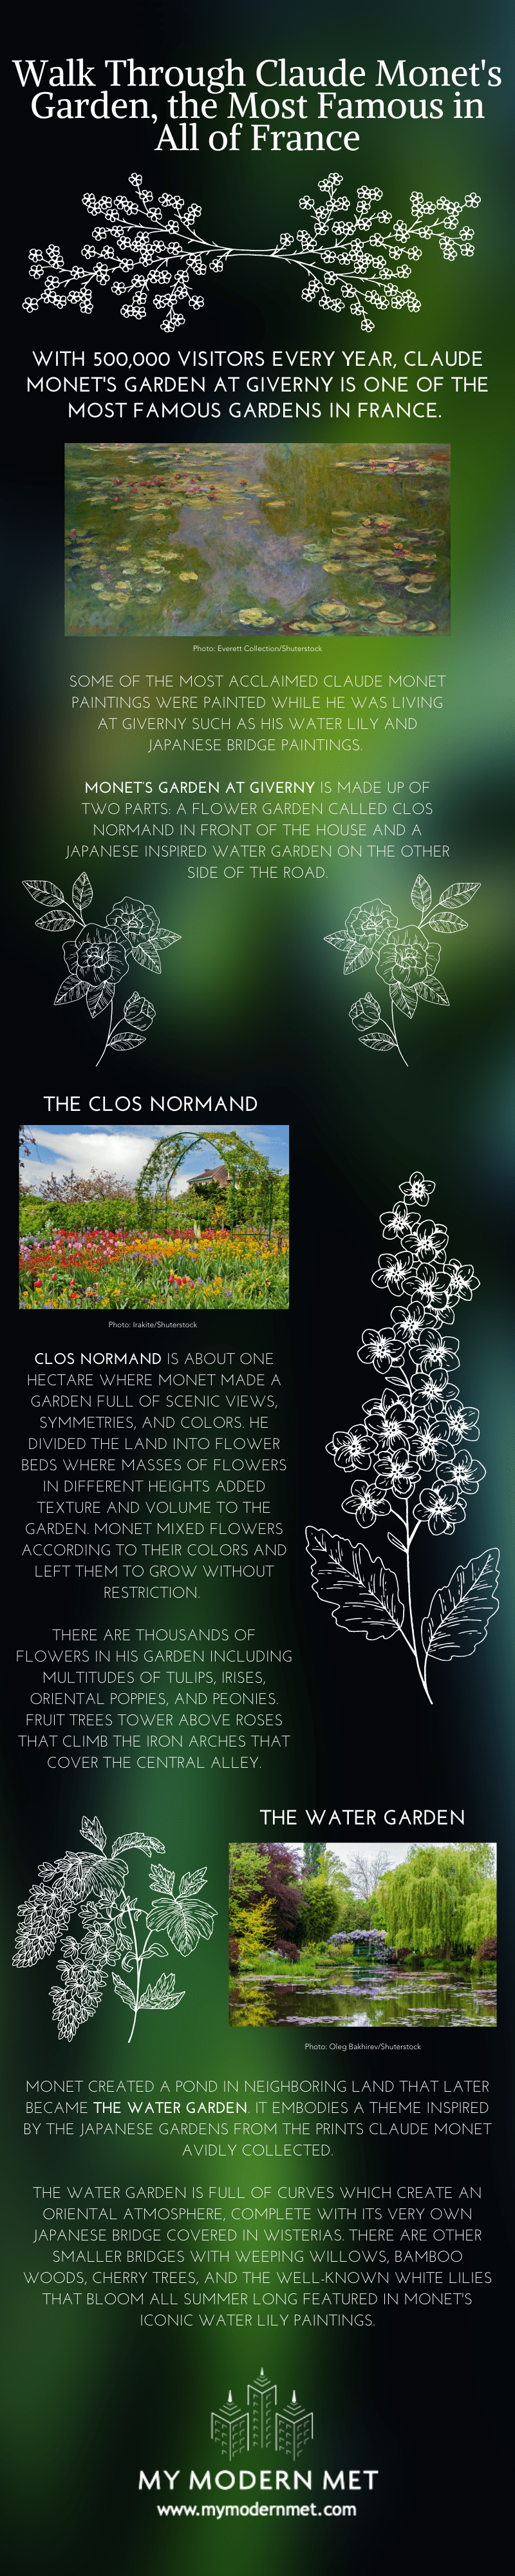 Claude Monet's Garden at Giverny Infographic by My Modern Met